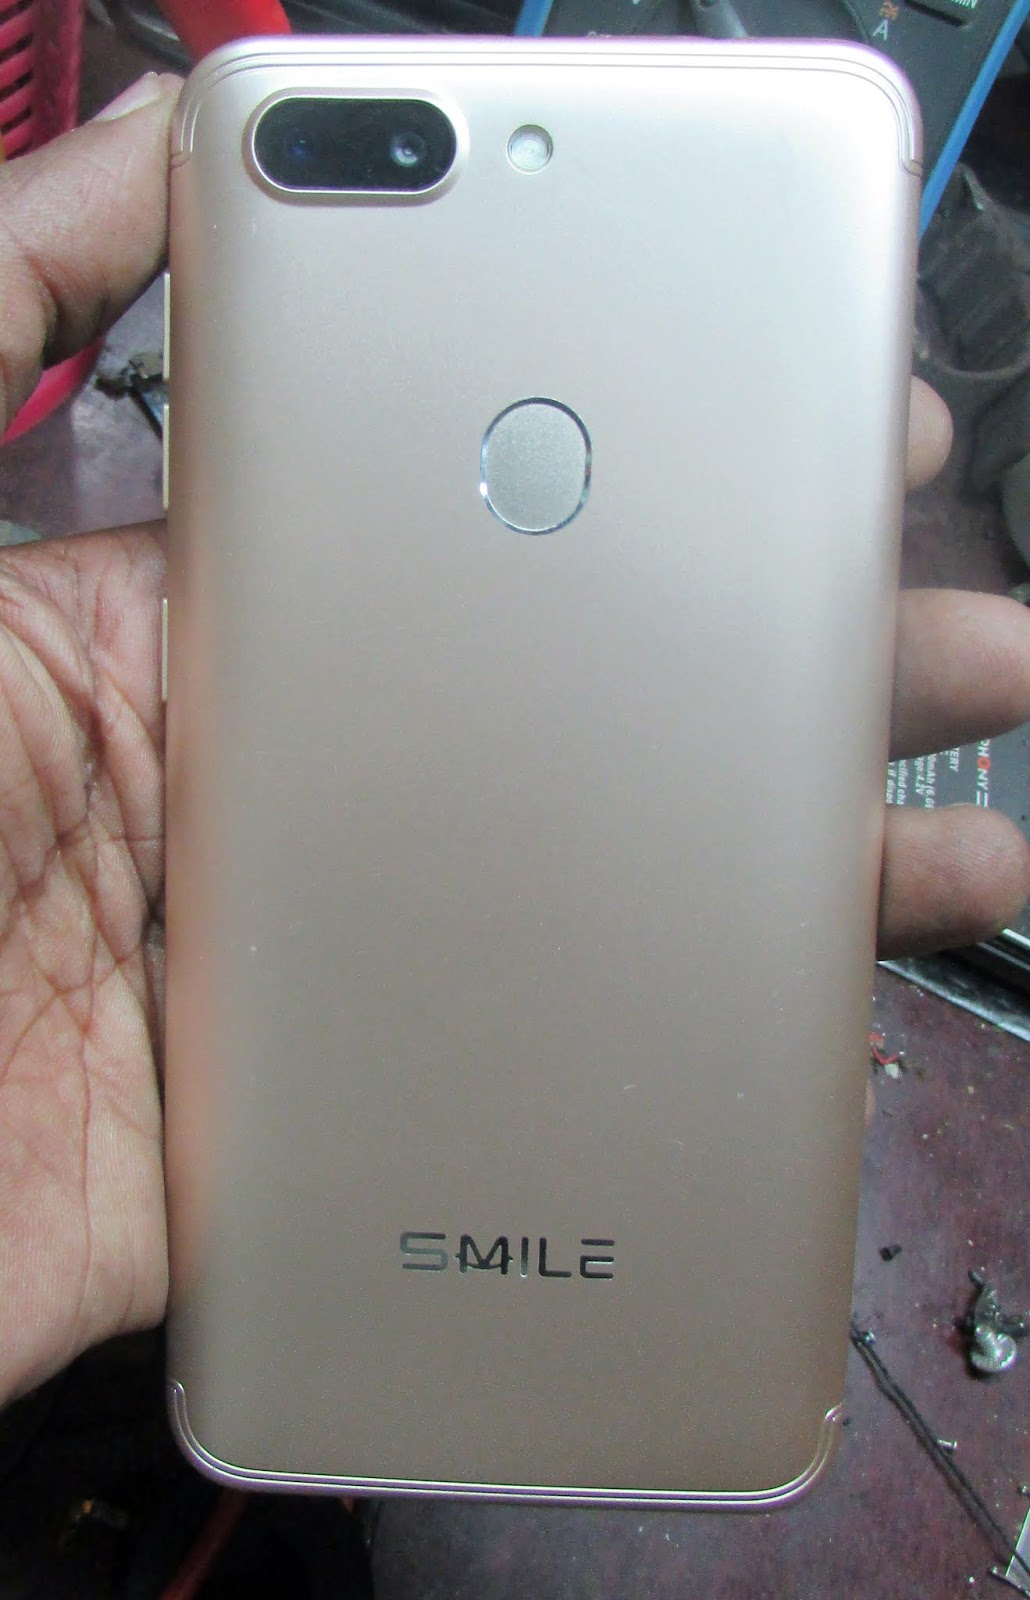 SMILE Q8_7 0_ MT6580 Firmware Flash File 100% Tested - All Mobile